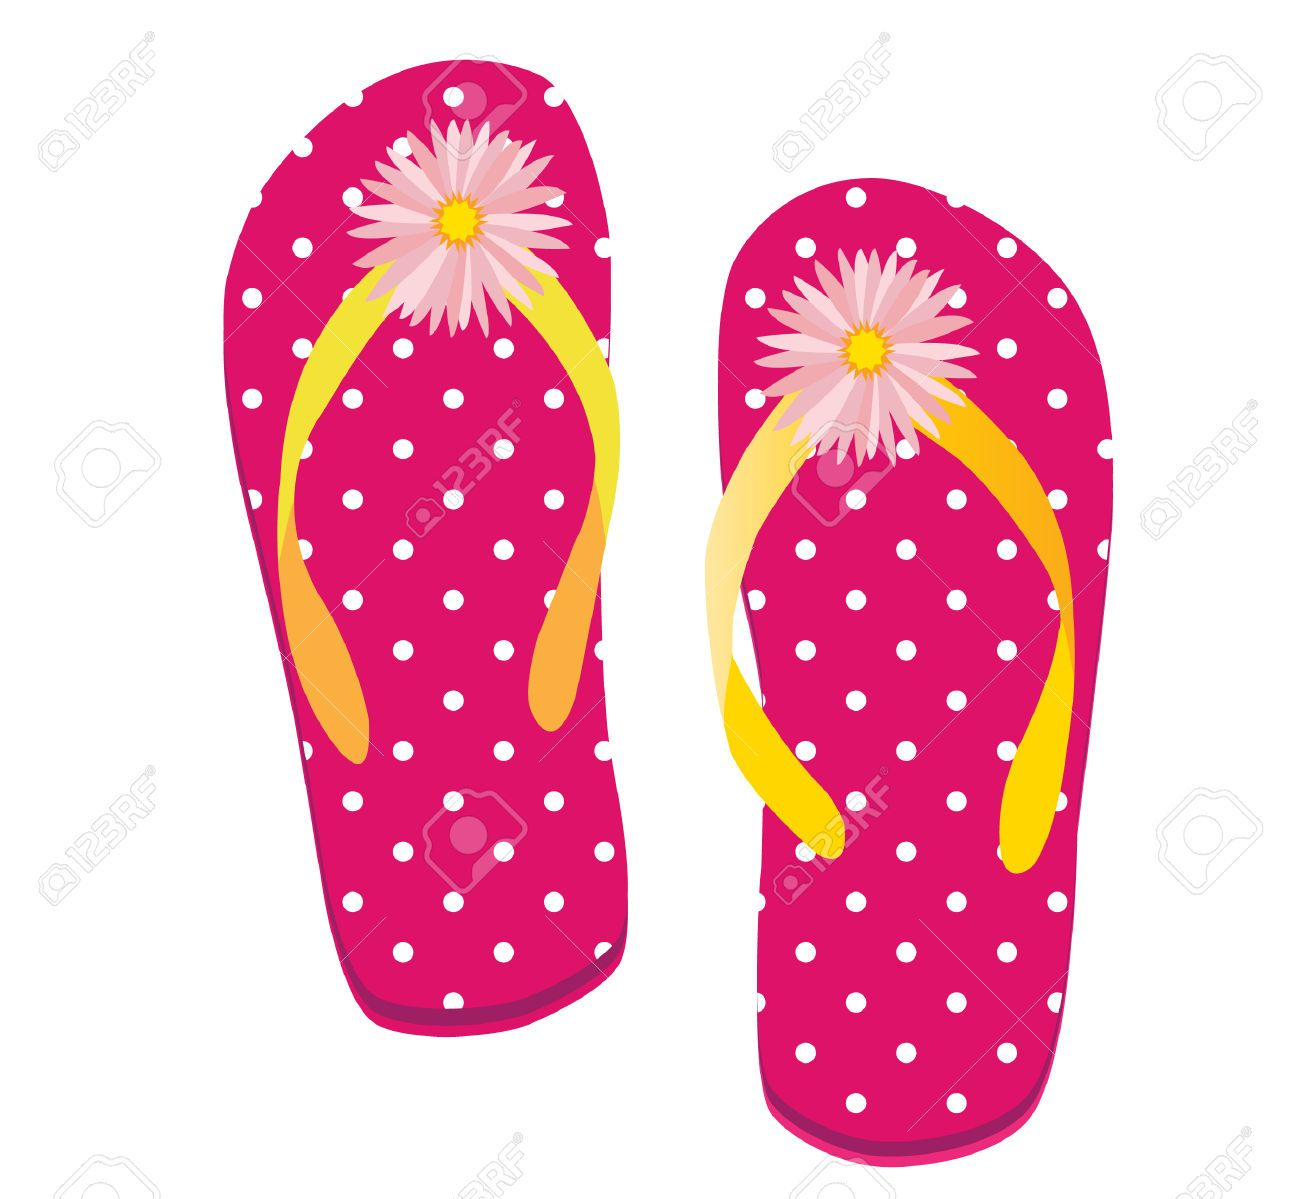 Flip Flop Stock Vector Illustration And Royalty Free Flip Flop ...